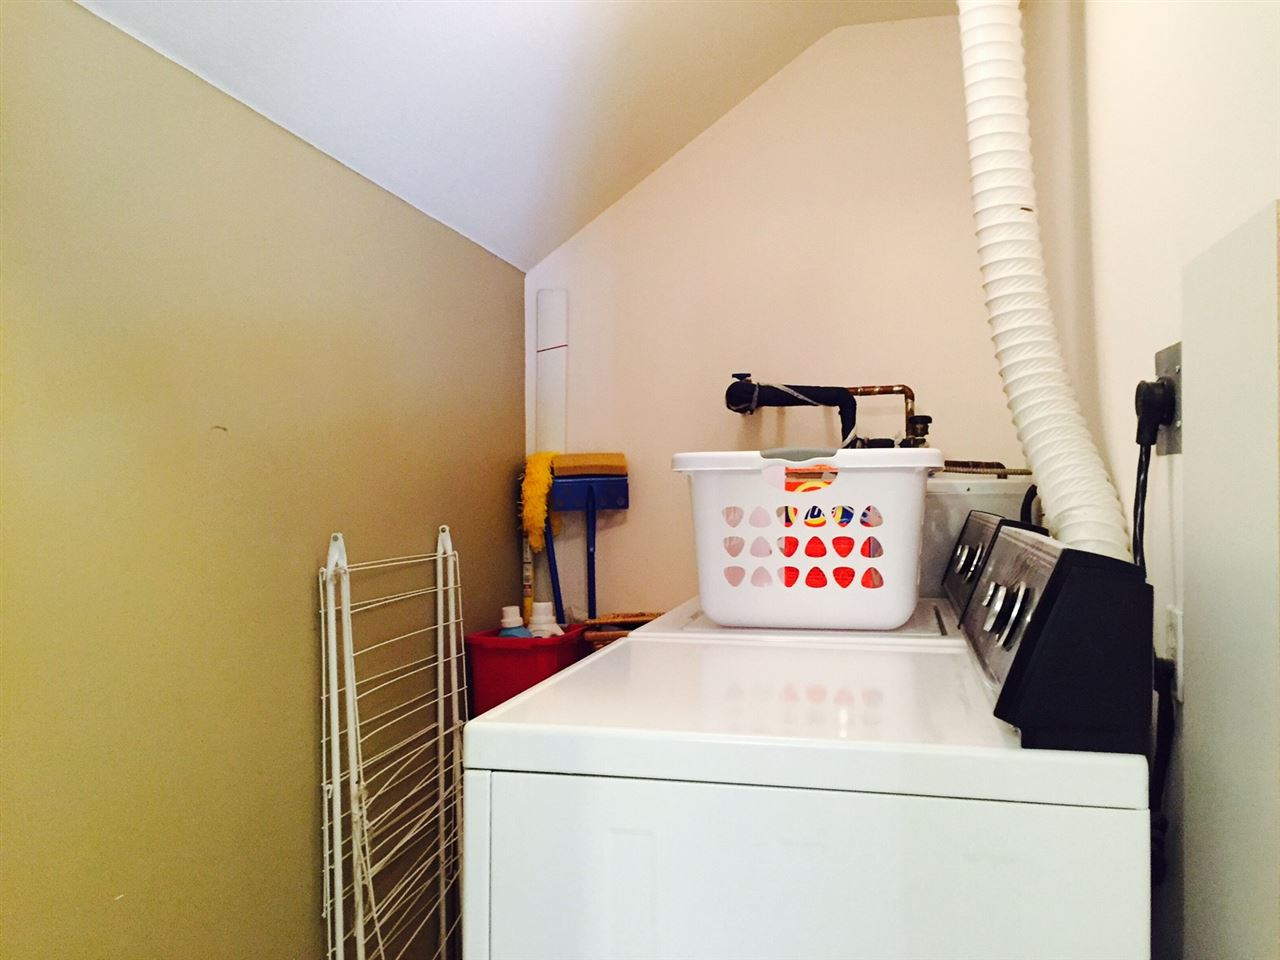 Good sized REAL Laundry Room...